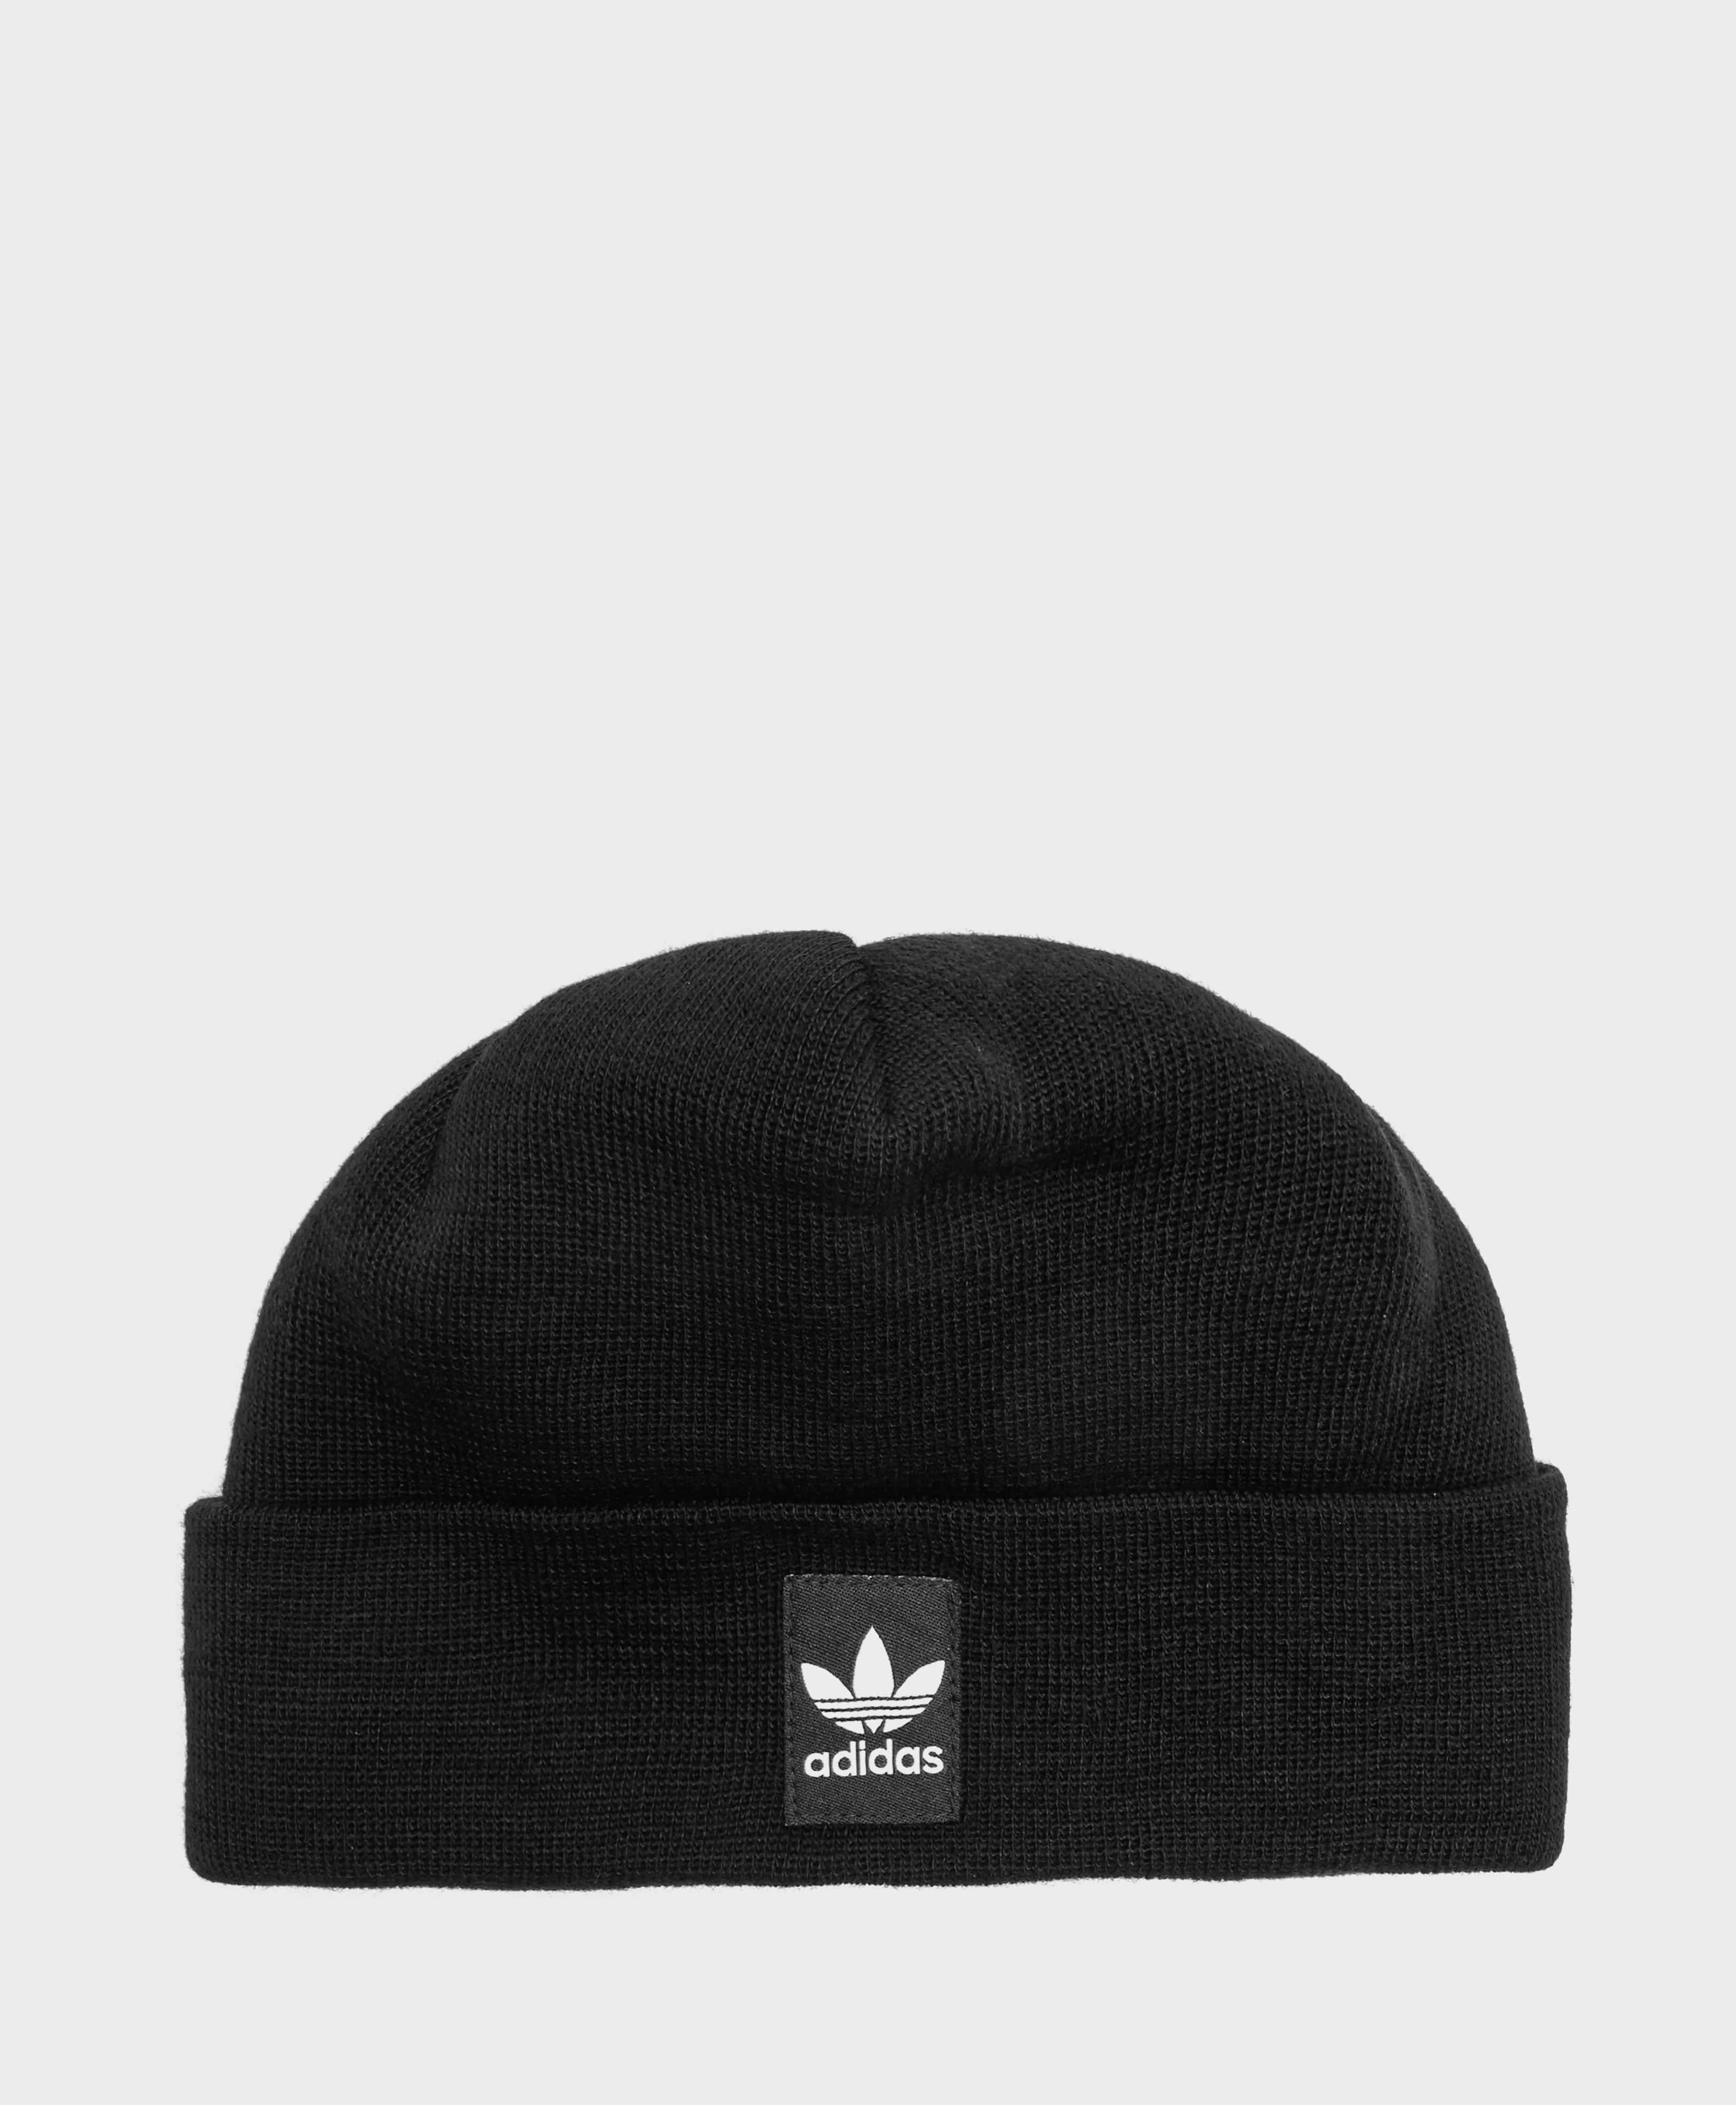 64a4342a049 Lyst - adidas Originals Ribbed Logo Beanie in Black for Men